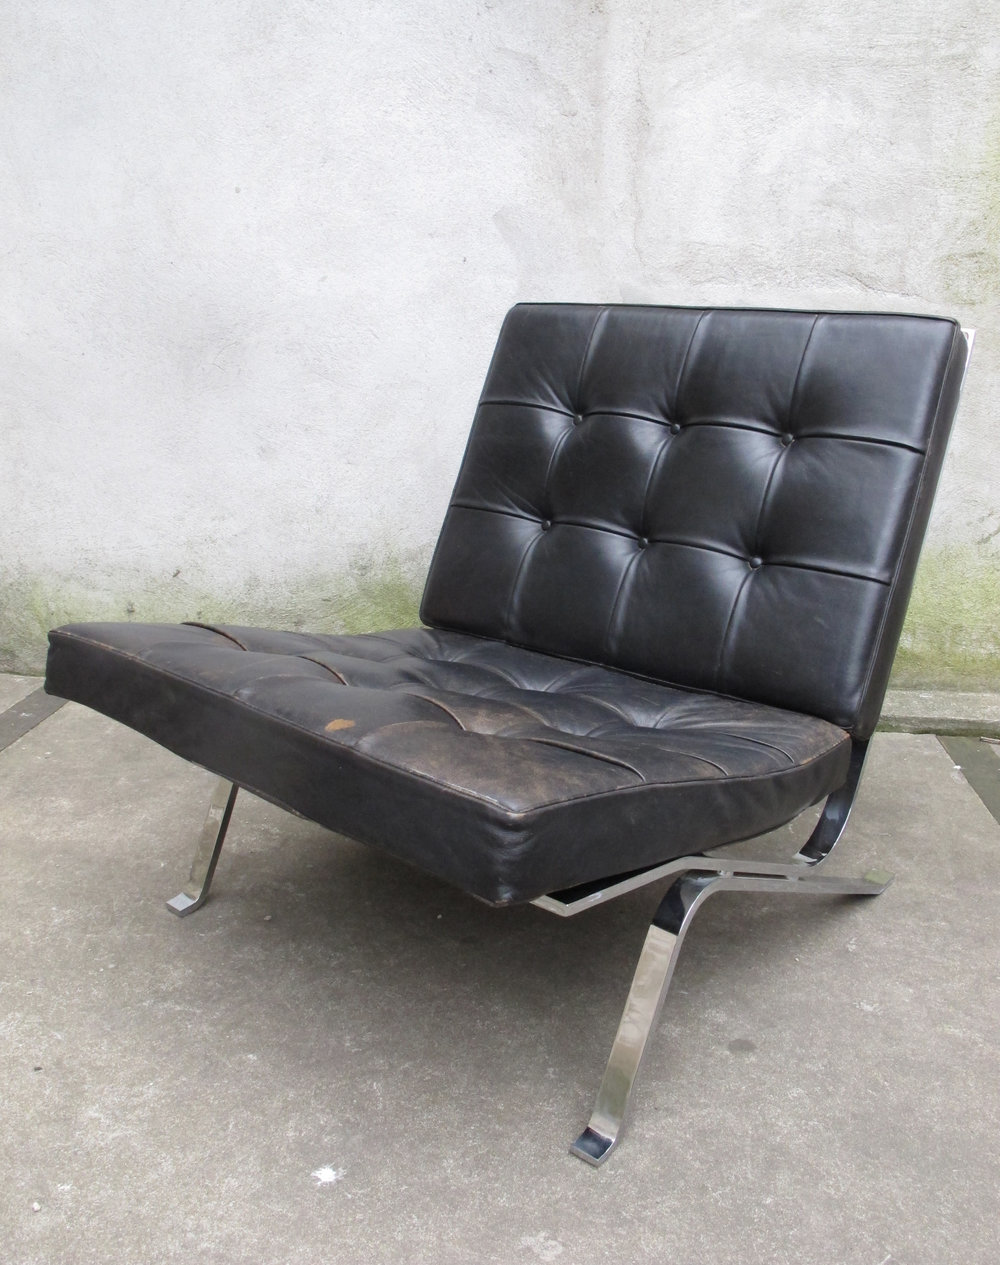 MID CENTURY 'HOMMAGE TO MIES' RH301 LEATHER CHAIR BY ROBERT HAUSSMANN